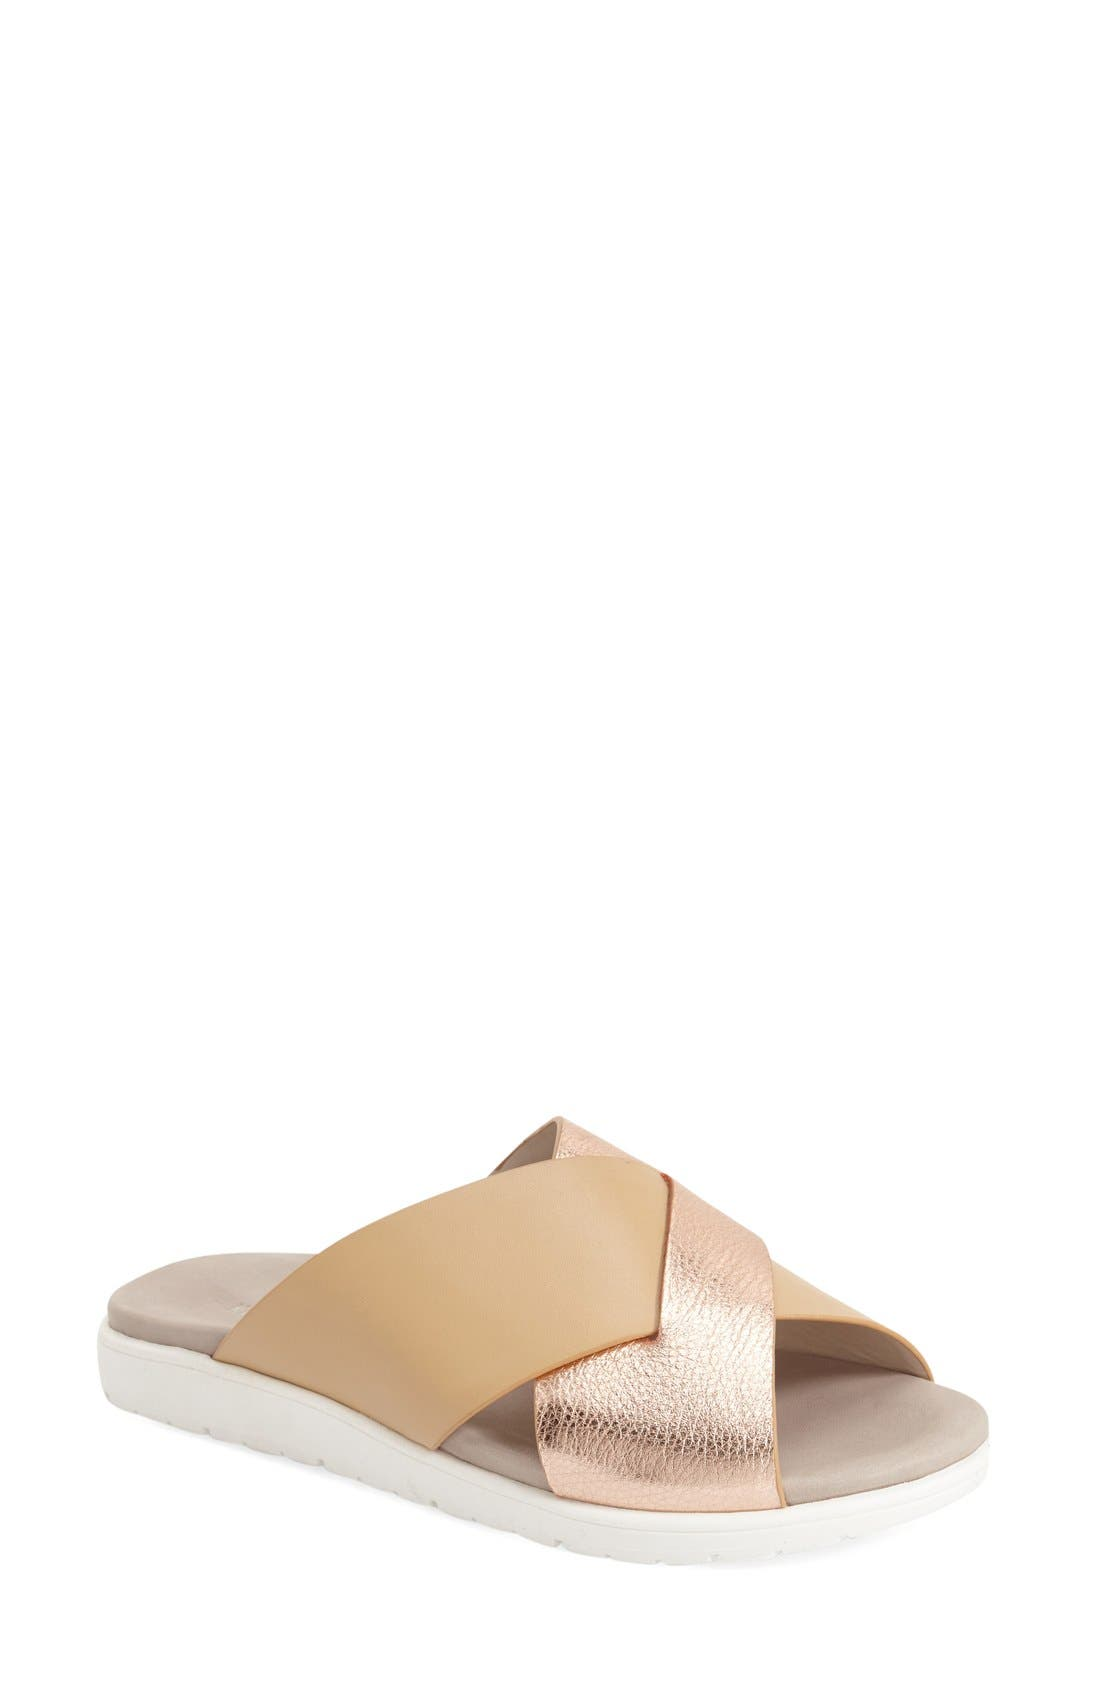 'Maxwell' Sandal,                         Main,                         color, Rose Gold/ Nude Leather